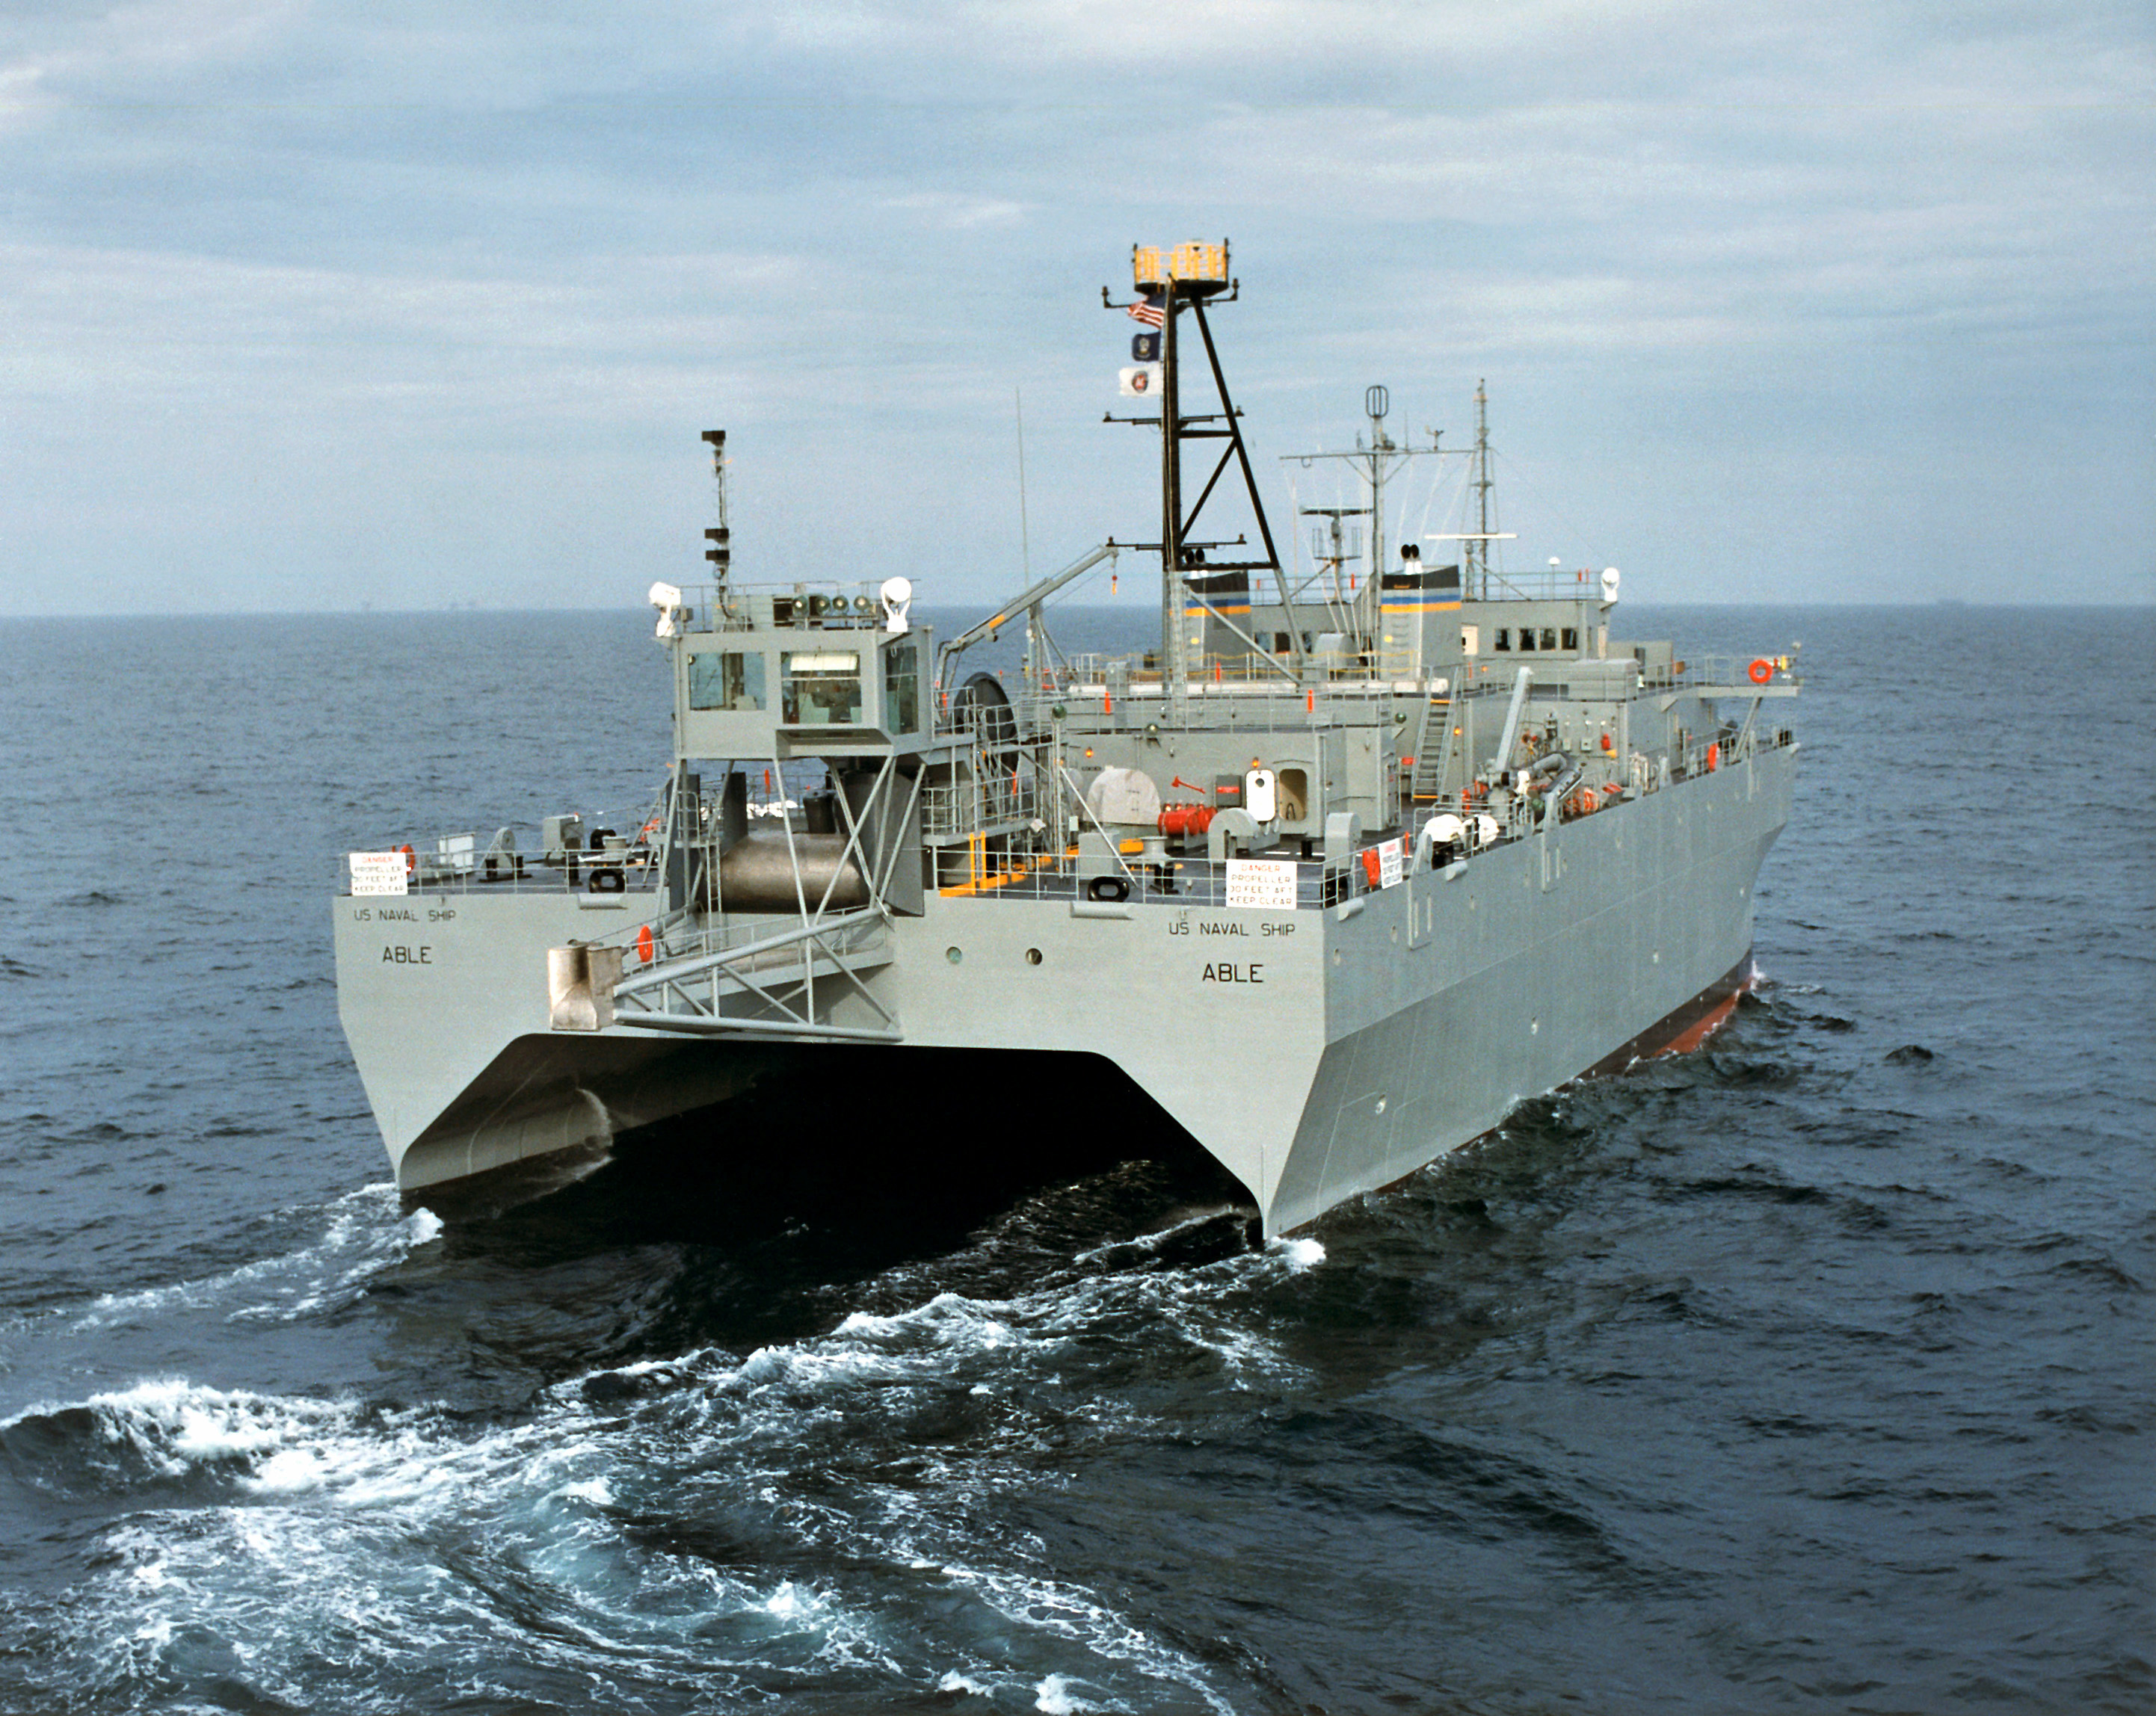 A starboard quarter view of the ocean surveillance ship USNS ABLE